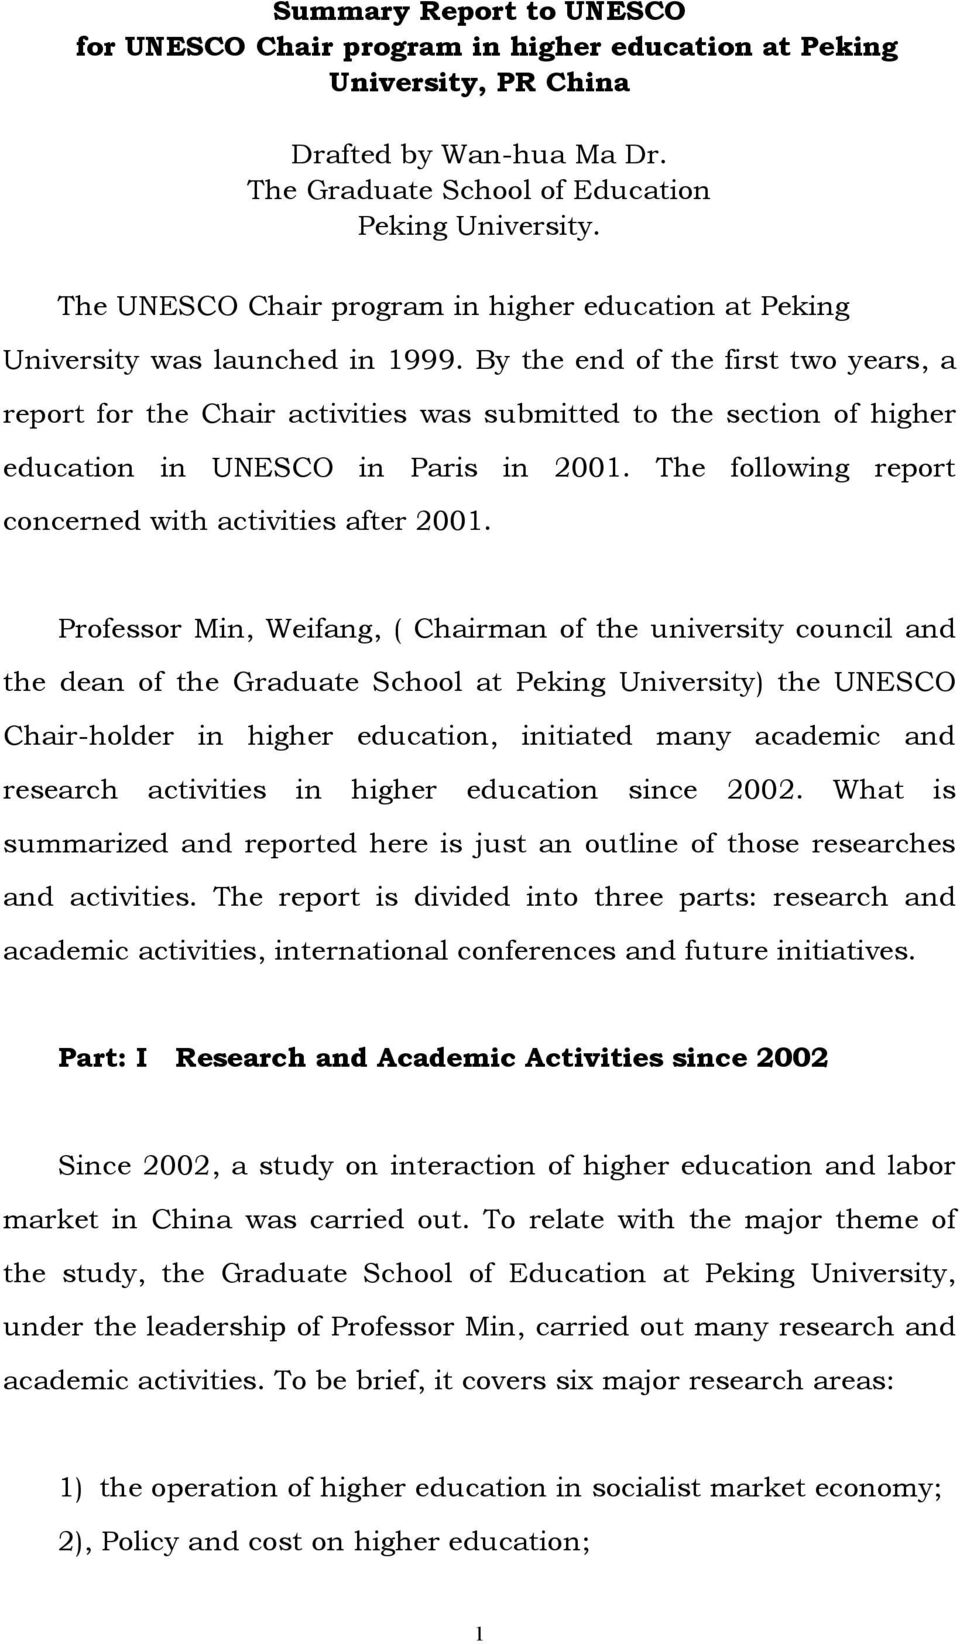 By the end of the first two years, a report for the Chair activities was submitted to the section of higher education in UNESCO in Paris in 2001.